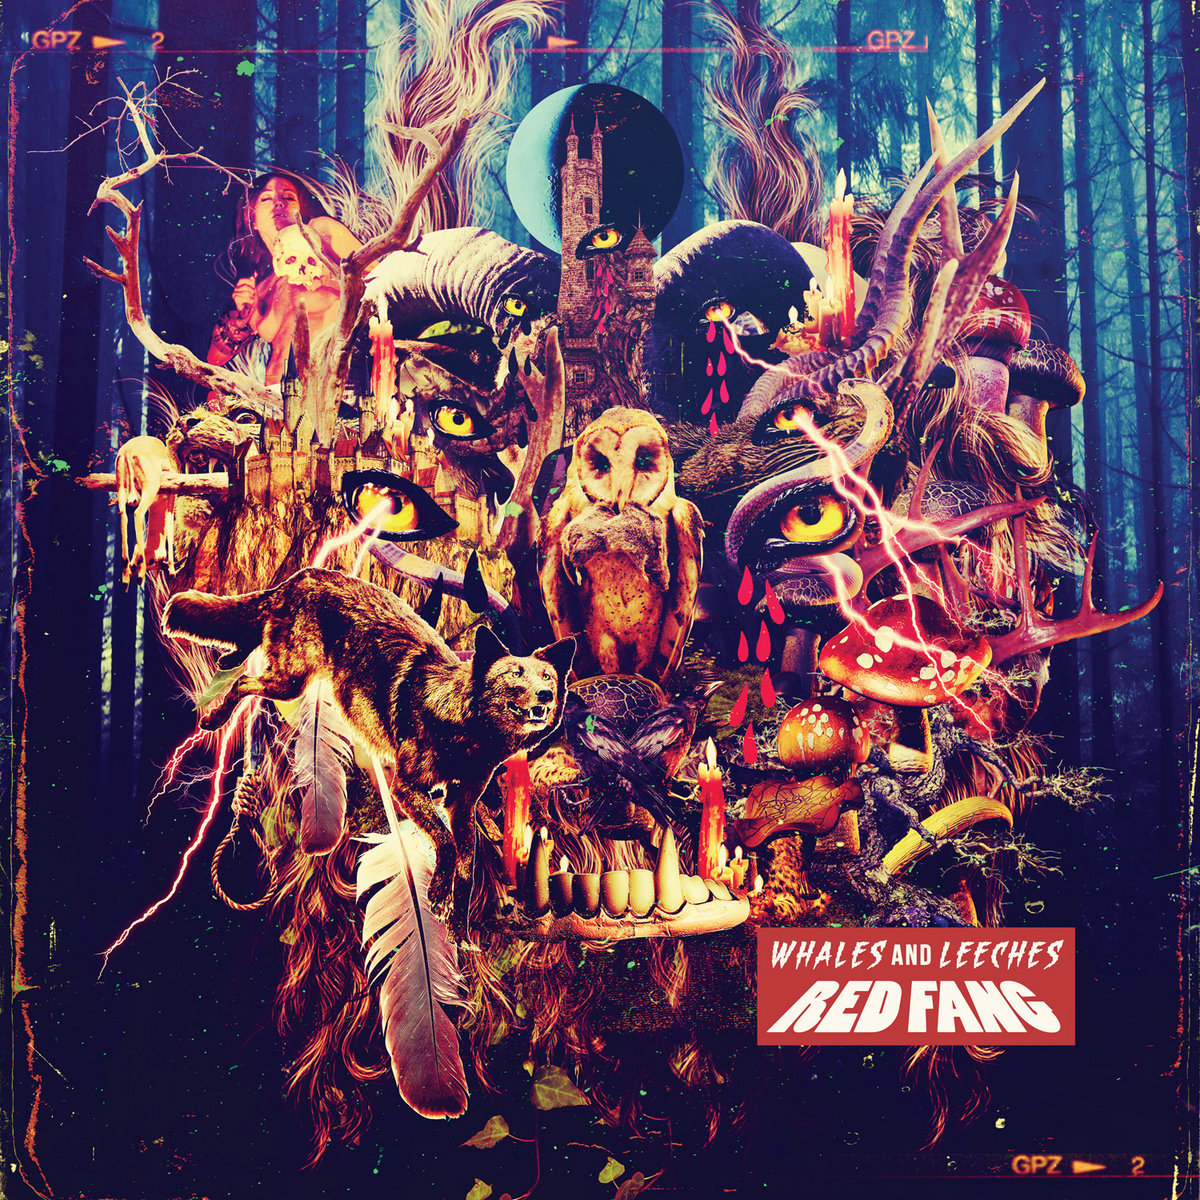 Red Fang - Whales and Leeches (2013)